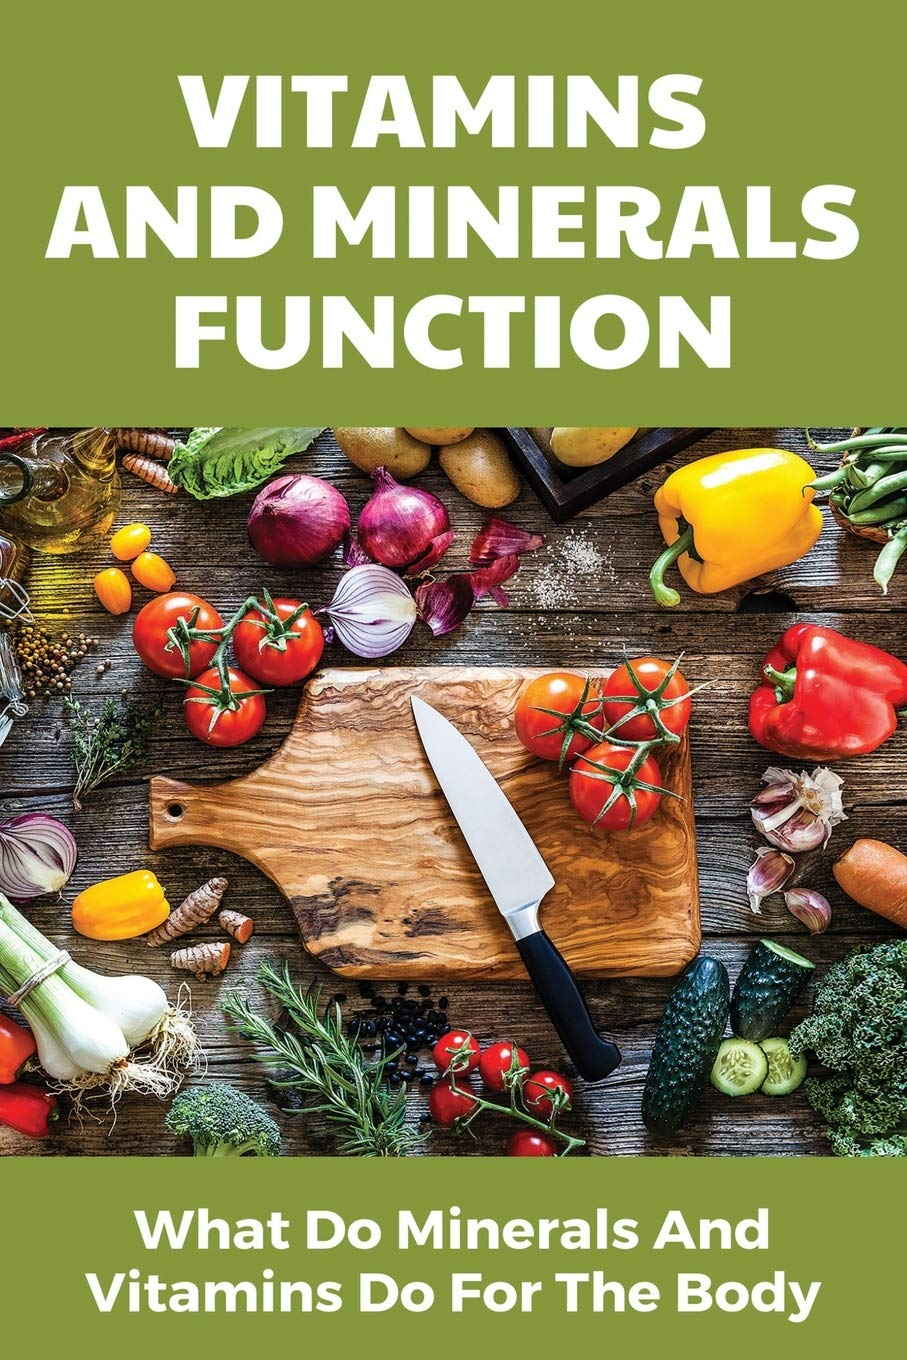 Vitamins And Minerals Function: What Do Minerals And Vitamins Do For The Body: Vitamins And Minerals Are Body Building Food